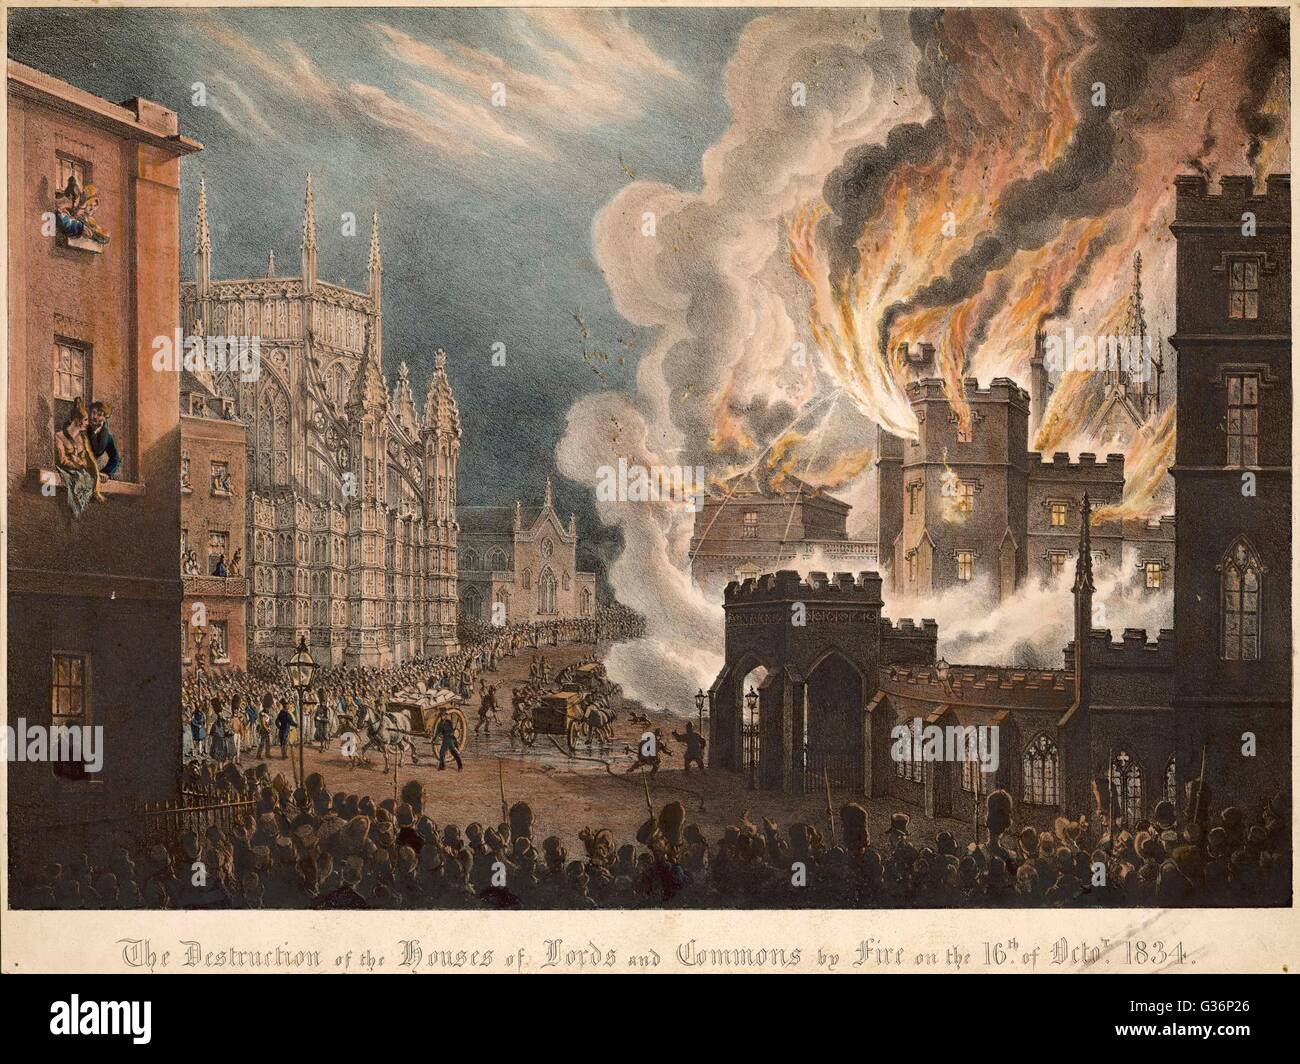 The Houses of Parliament destroyed by fire.           Date: 16 October 1834 - Stock Image